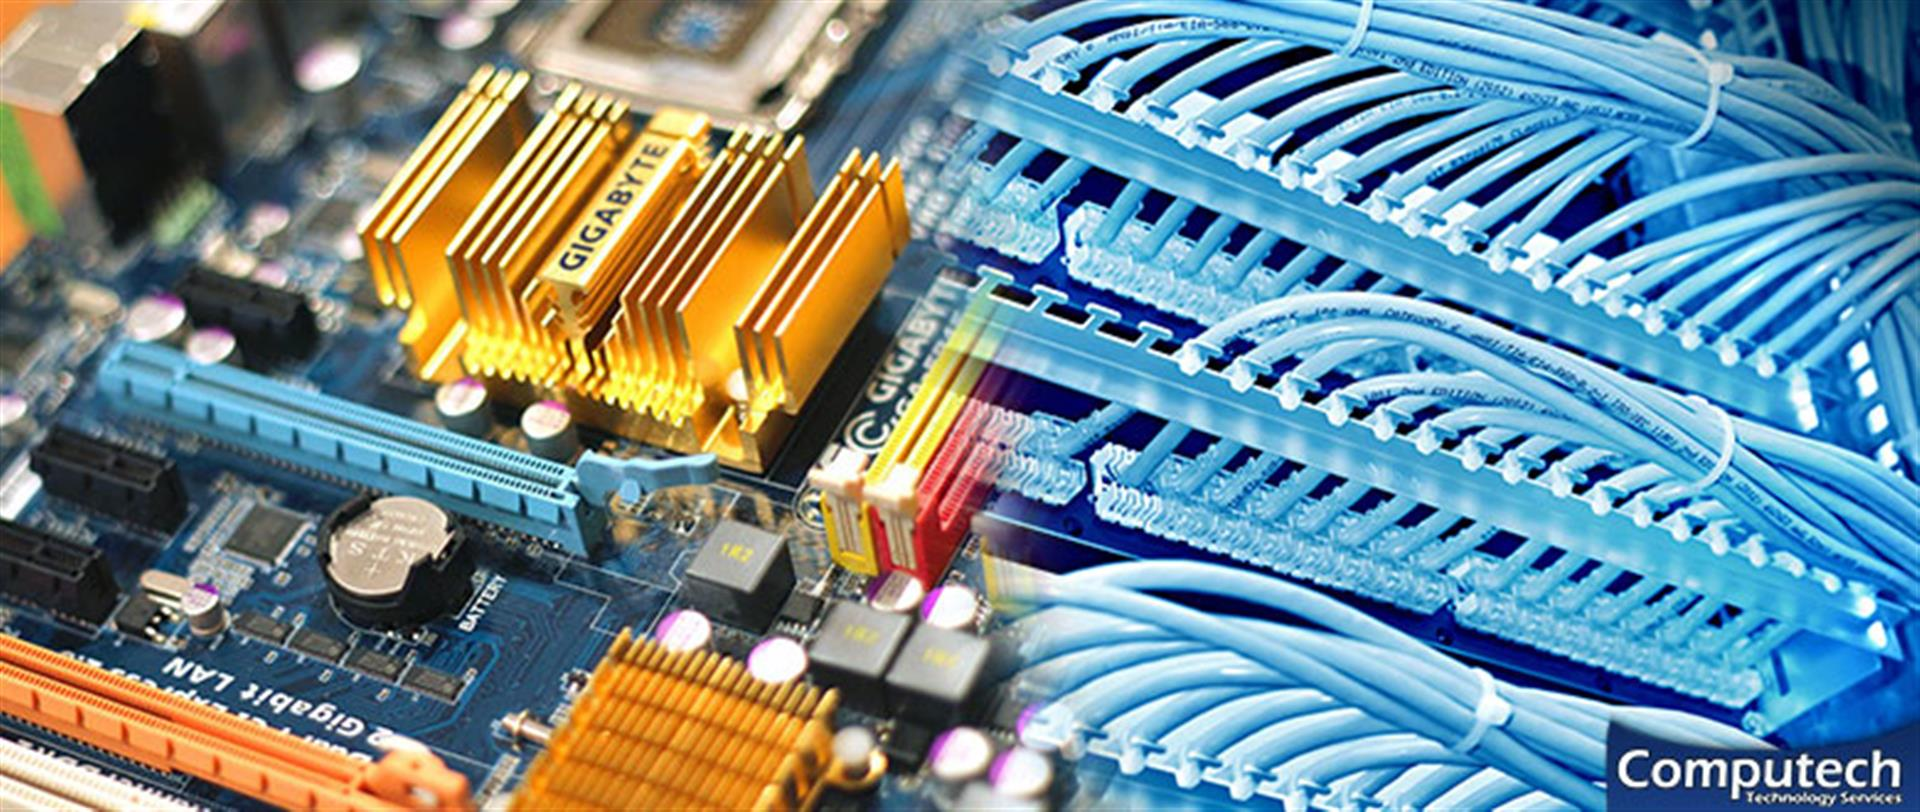 Springfield Georgia On-Site Computer PC & Printer Repair, Networks, Voice & Data Cabling Contractors